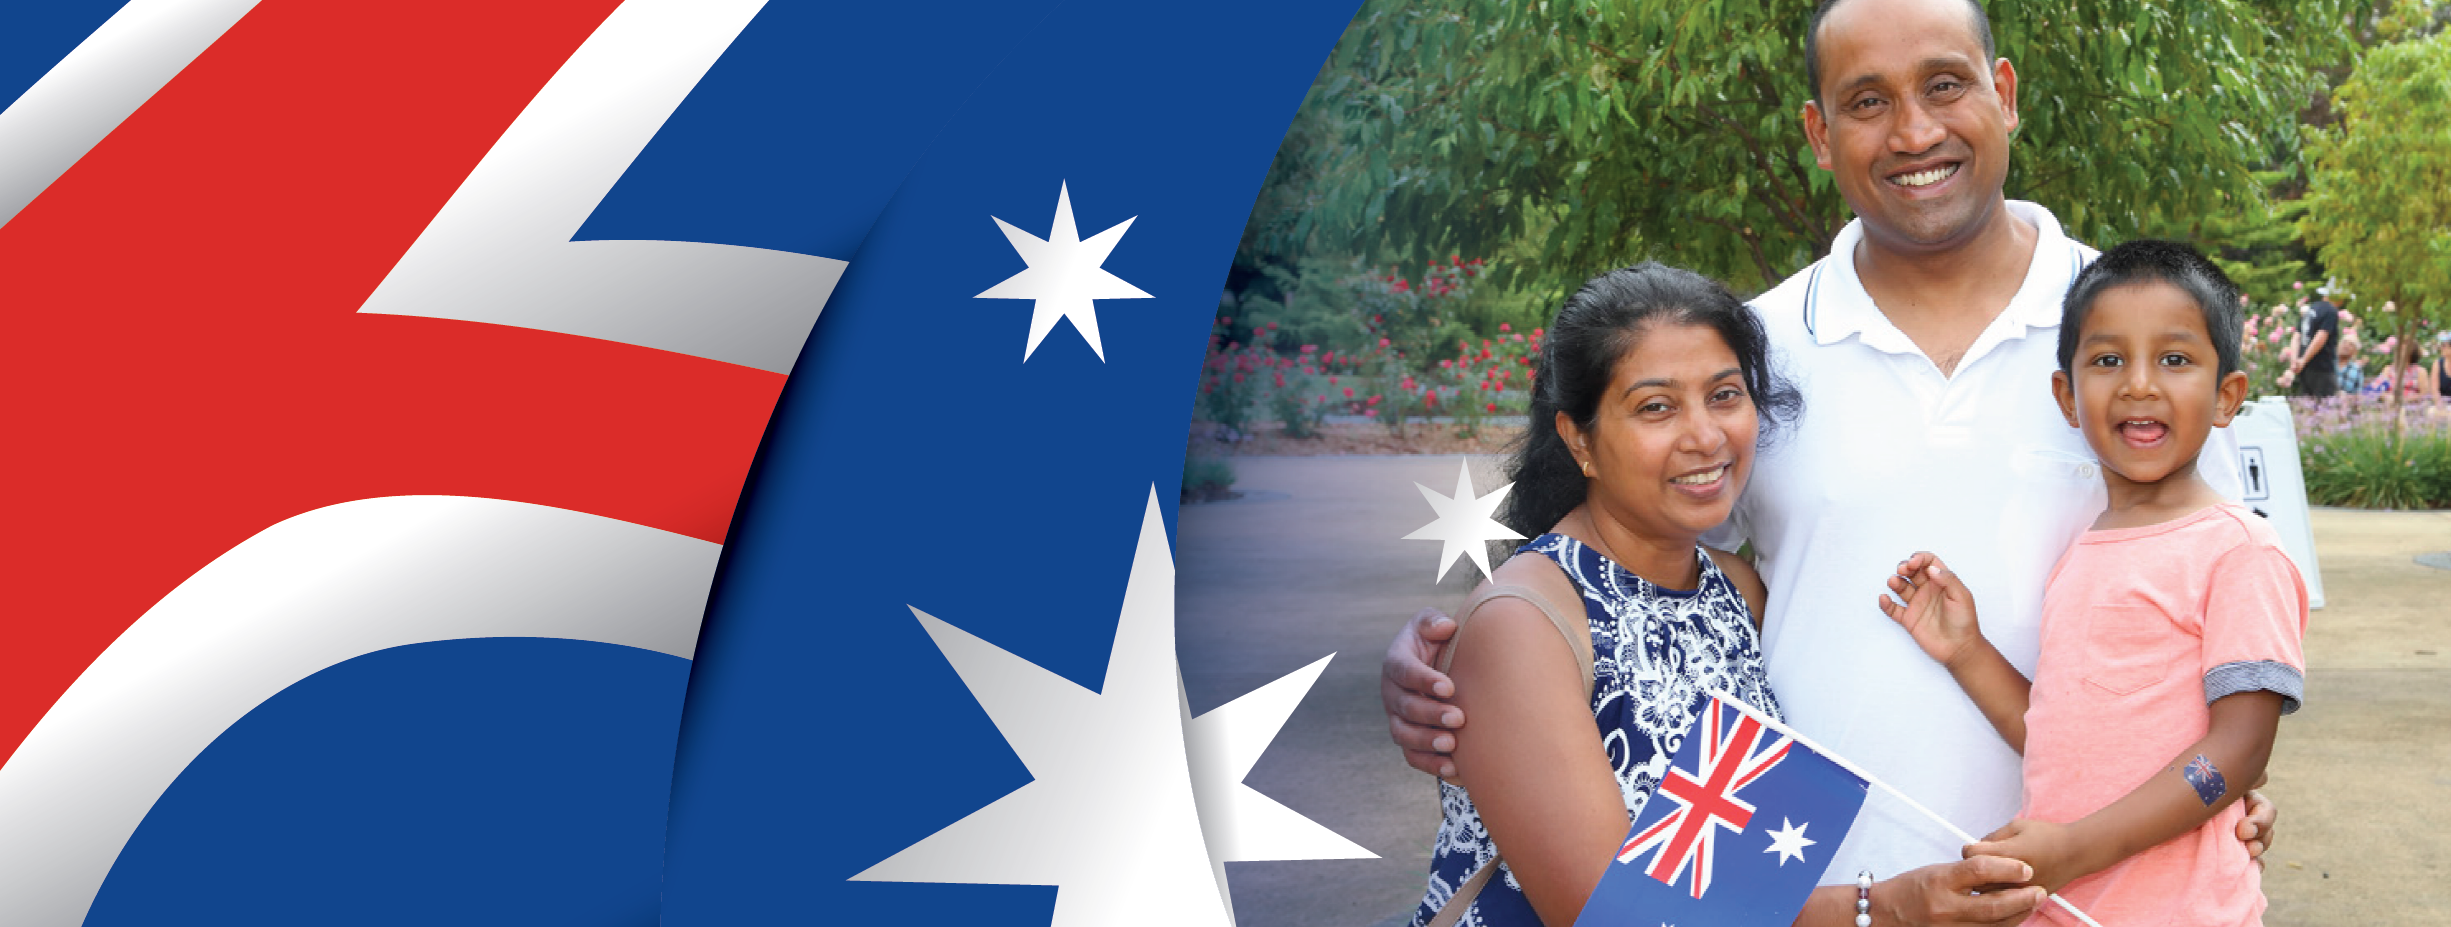 Australia Day banner with family